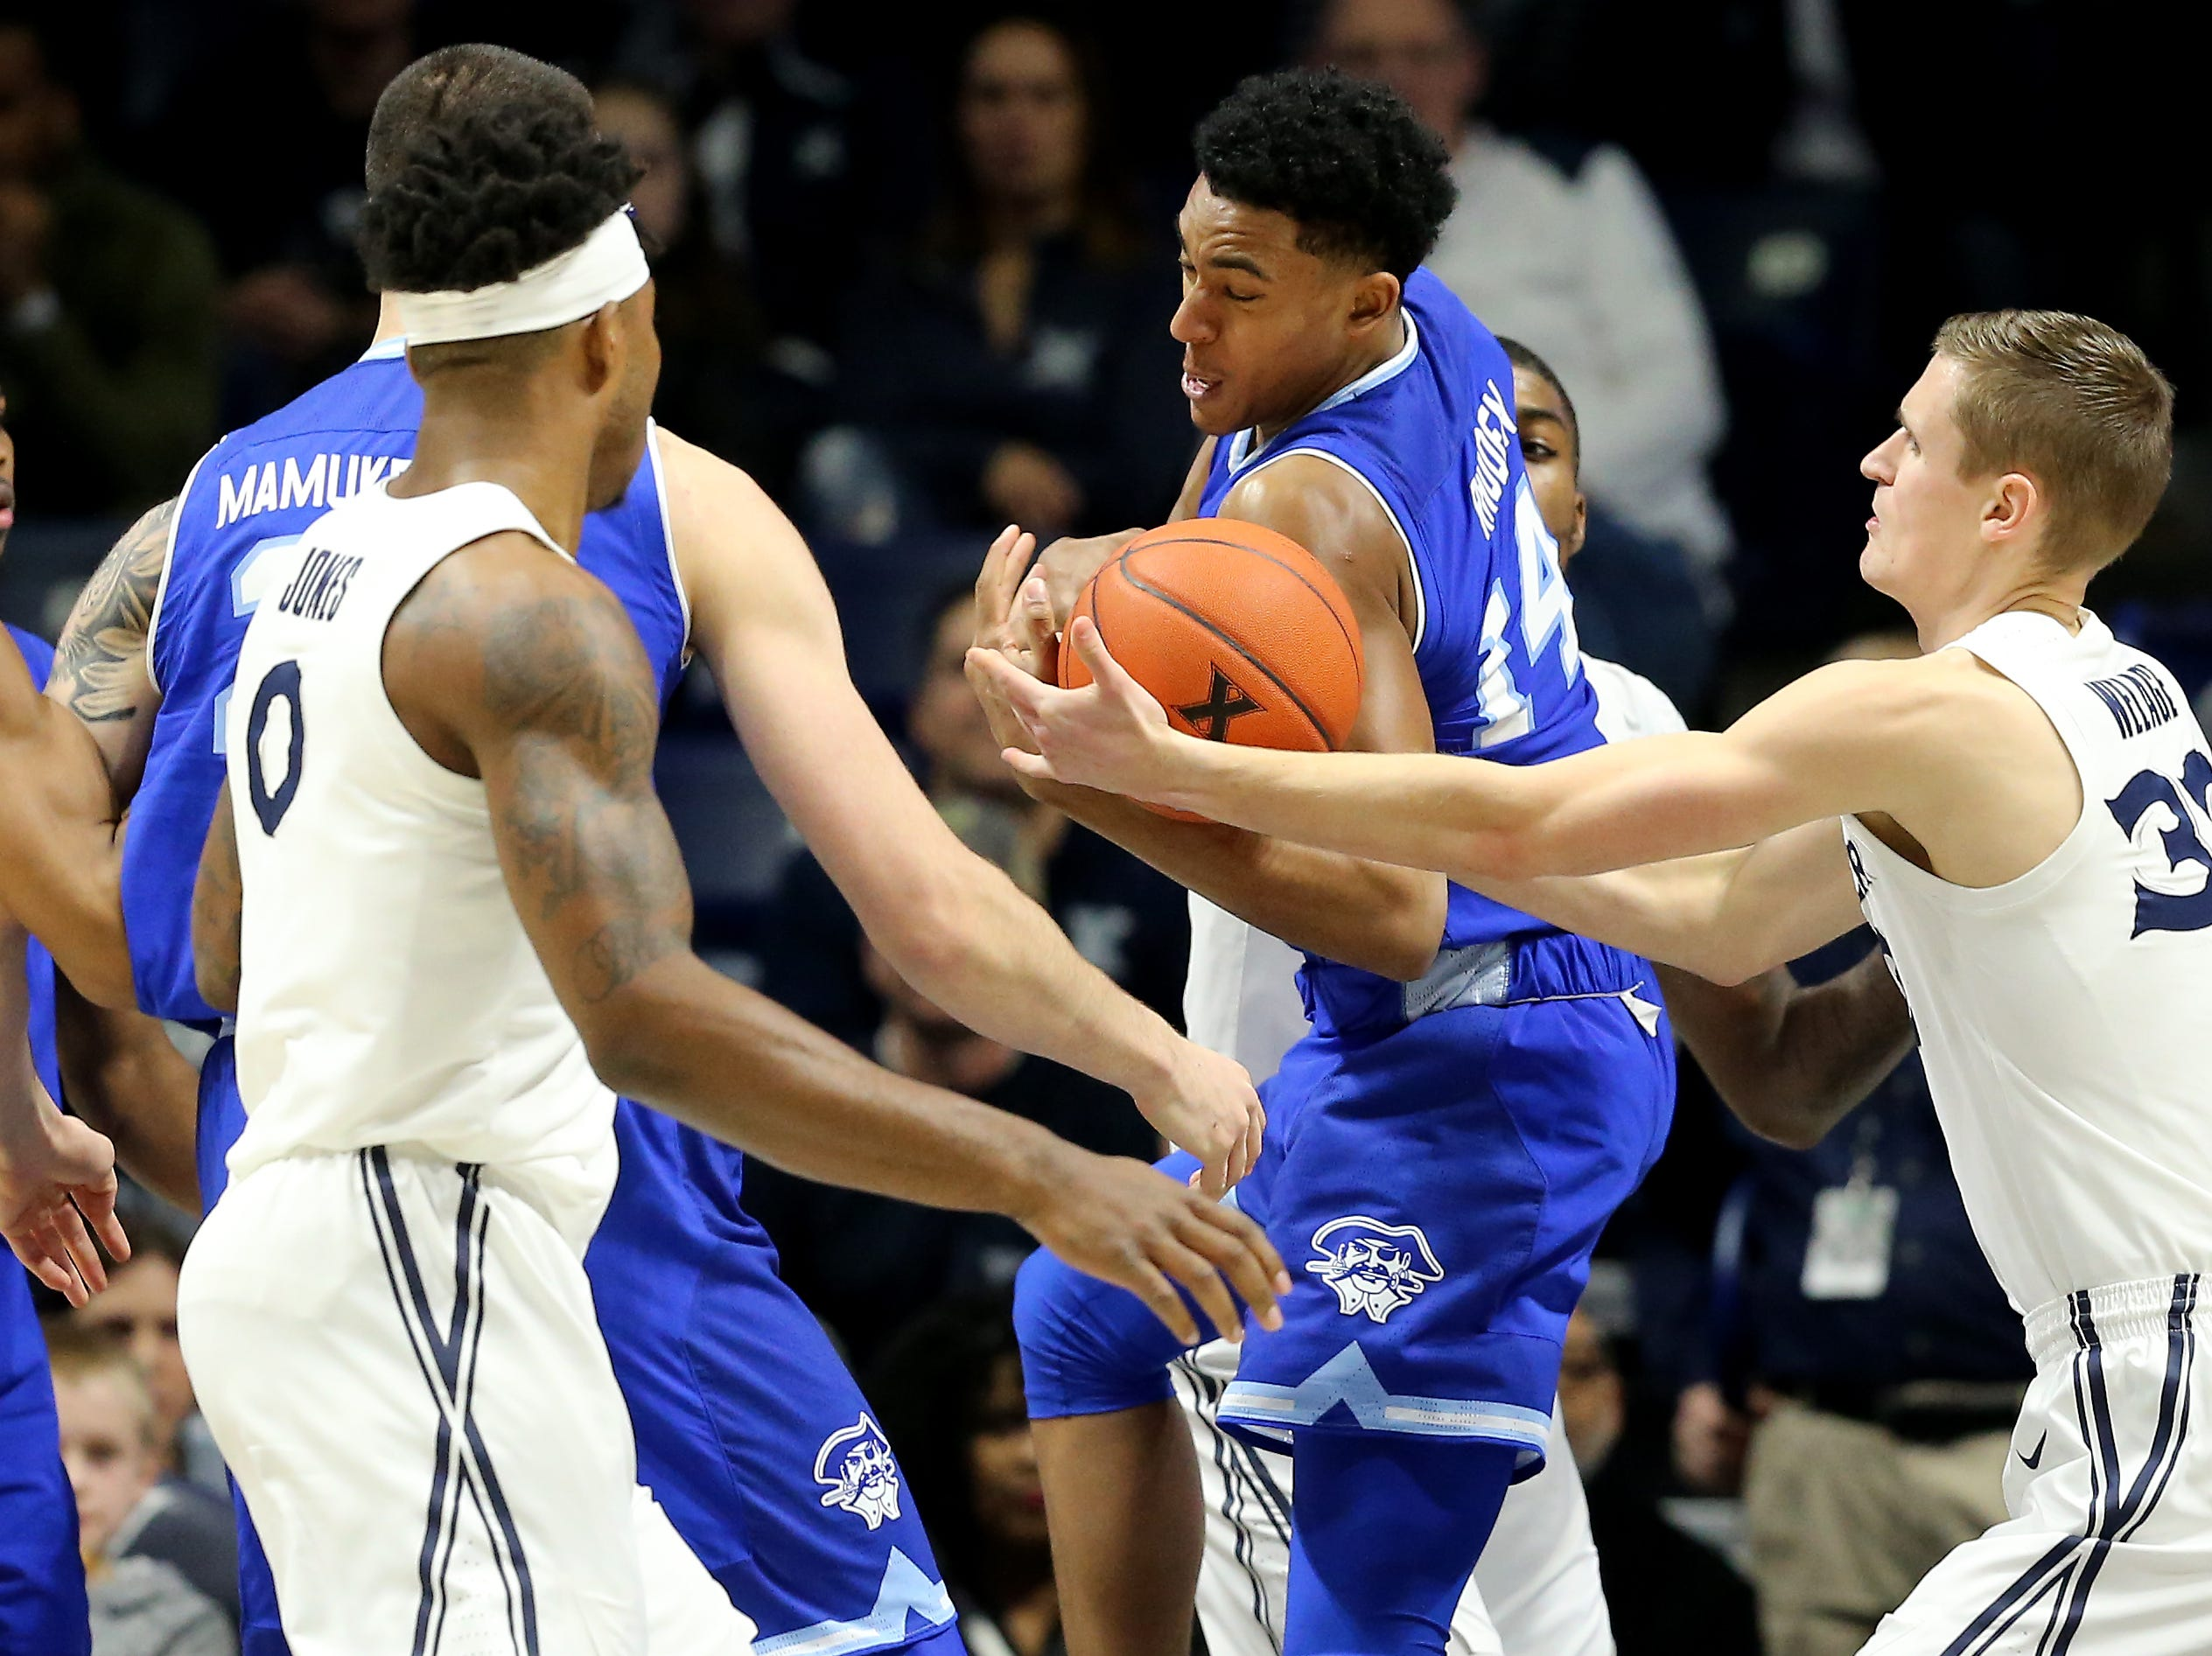 Seton Hall Pirates guard Jared Rhoden (14) pulls down a rebound away from Xavier Musketeers forward Ryan Welage (32) in the first half of an NCAA college basketball game, Wednesday, Jan. 2, 2019, at the Cintas Center in Cincinnati.